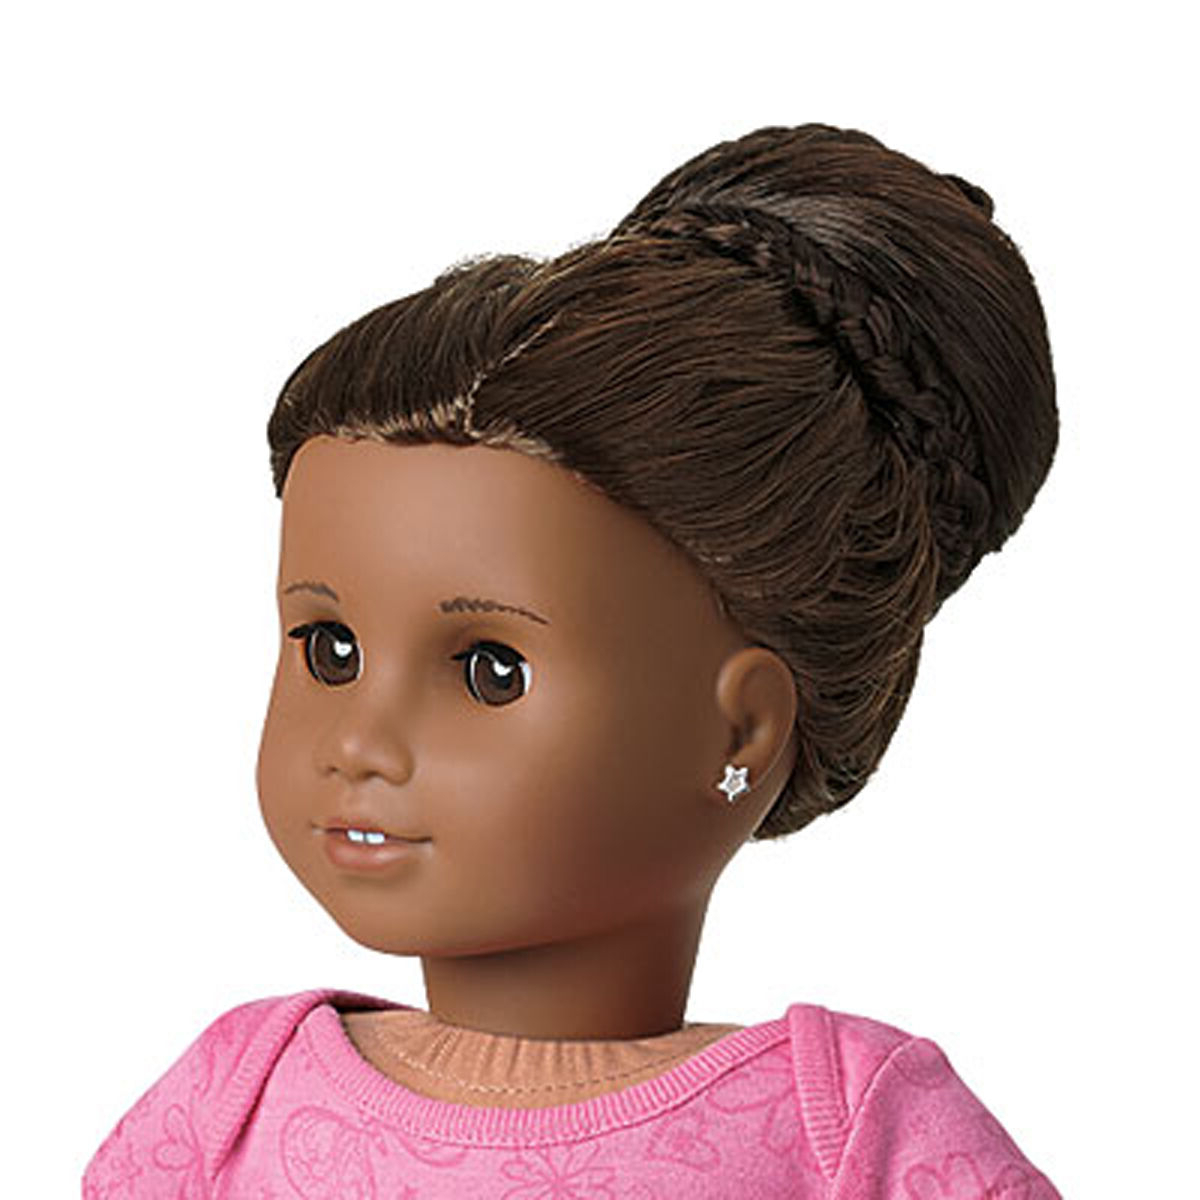 American Girl Chic Dark Brown Bun Doll Hair Extention Updo Crisscross Braids For Well Known Criss Cross Braid Bun Hairstyles (View 3 of 20)